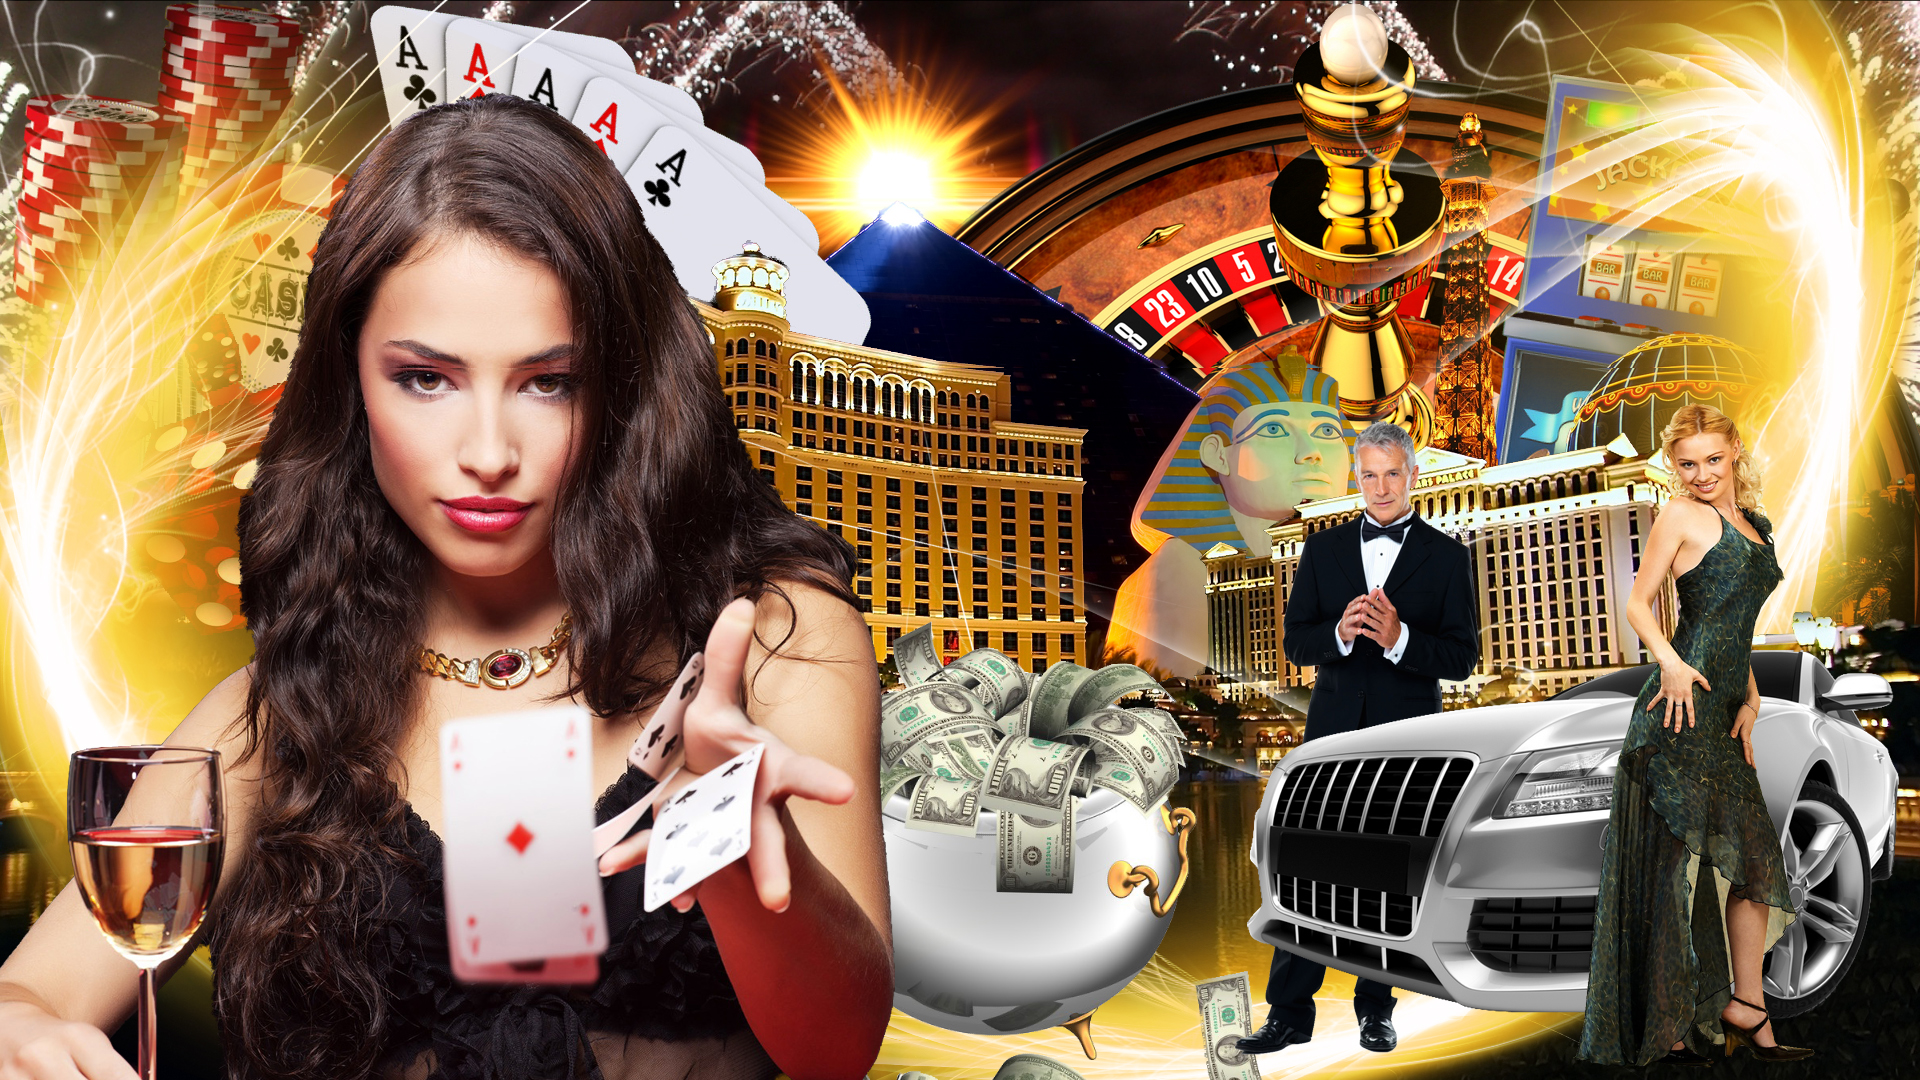 Some Useful Information About Online Casino Games